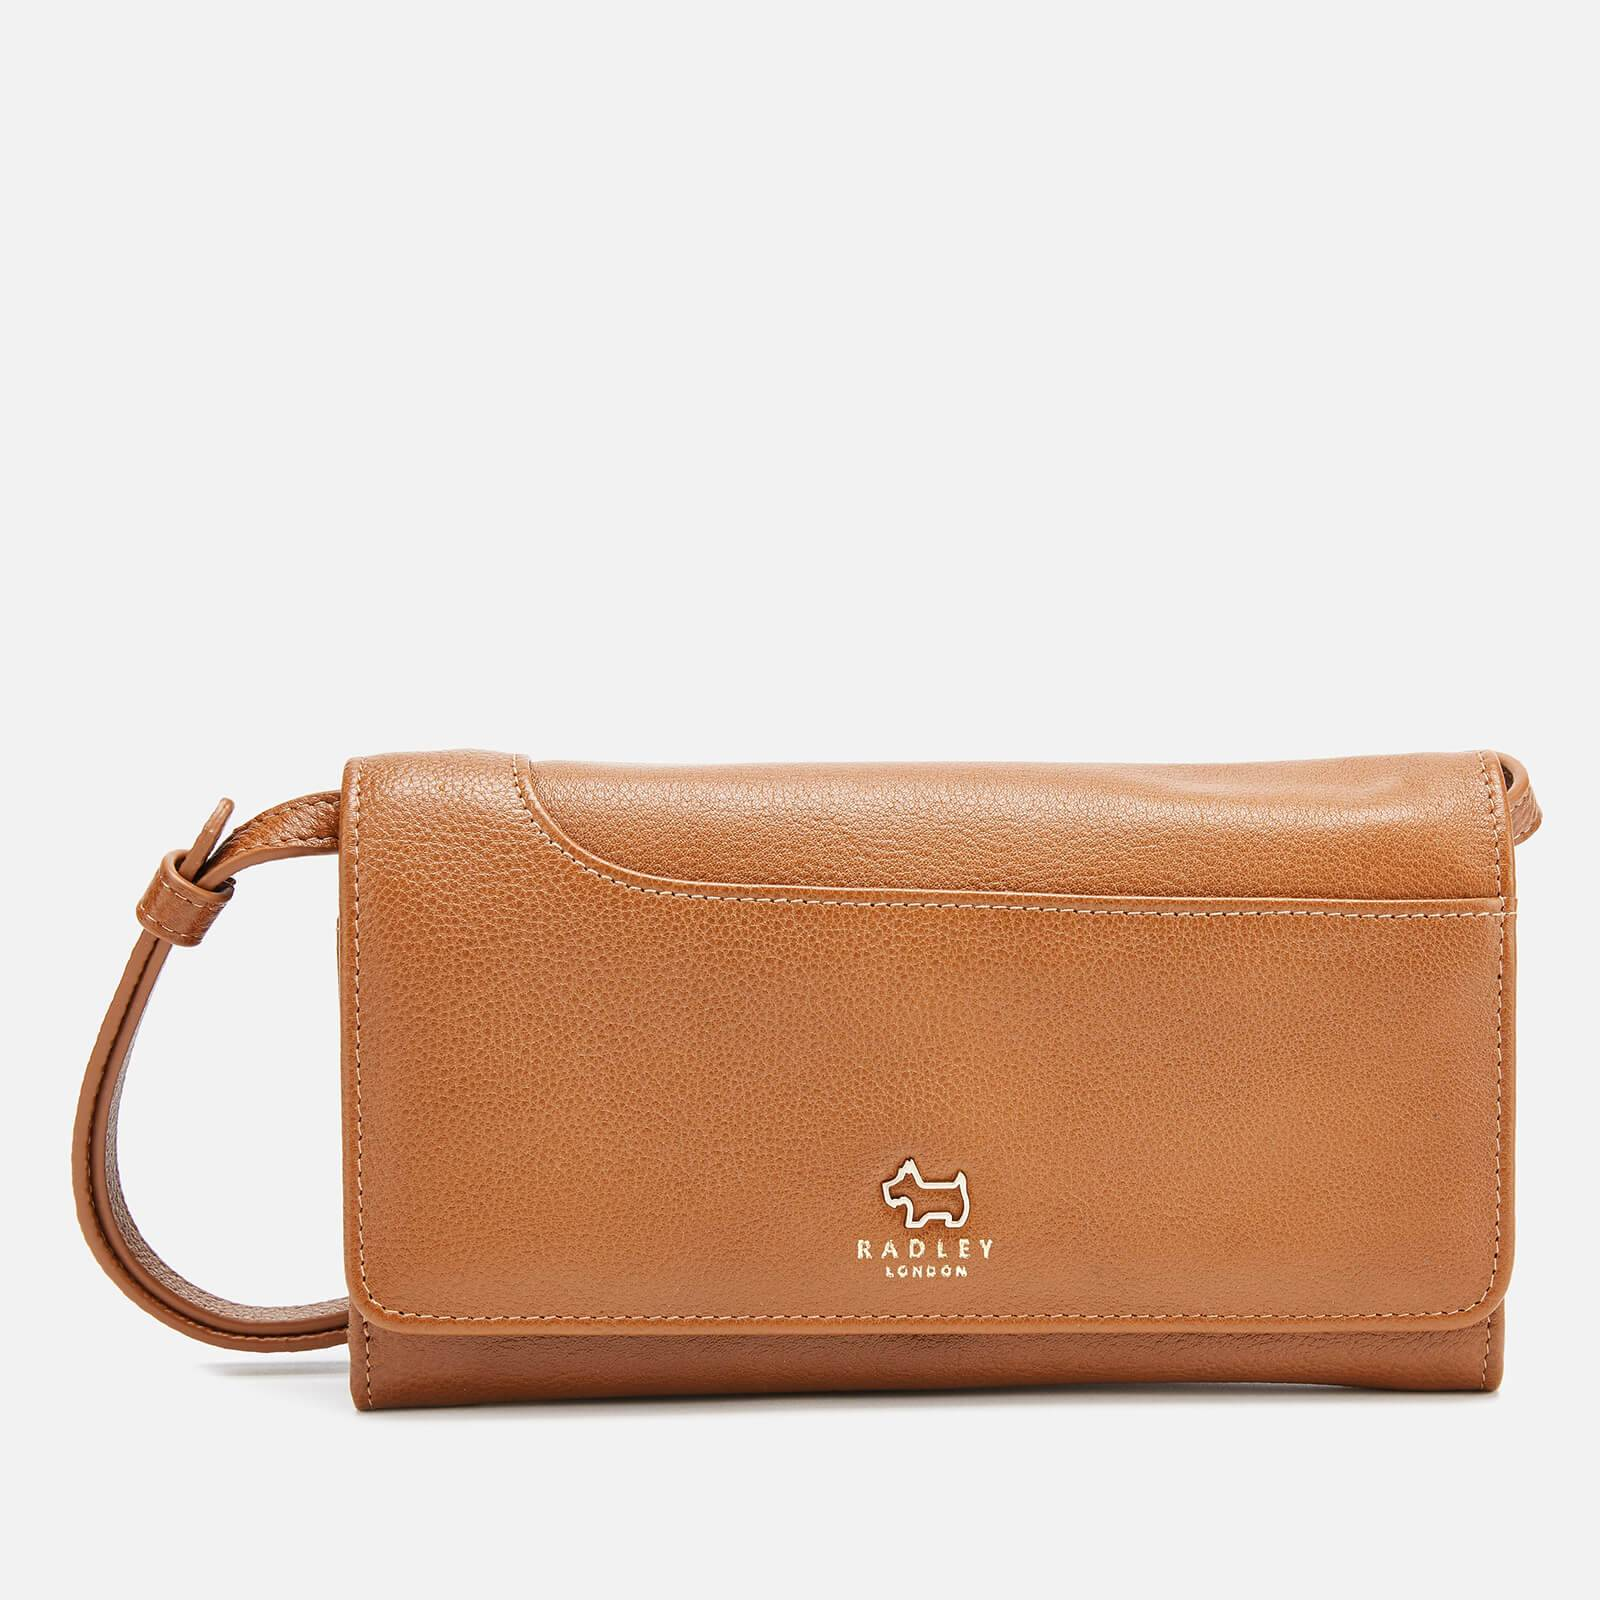 Radley Women's Pockets Large Phone Cross Body Bag - Honey